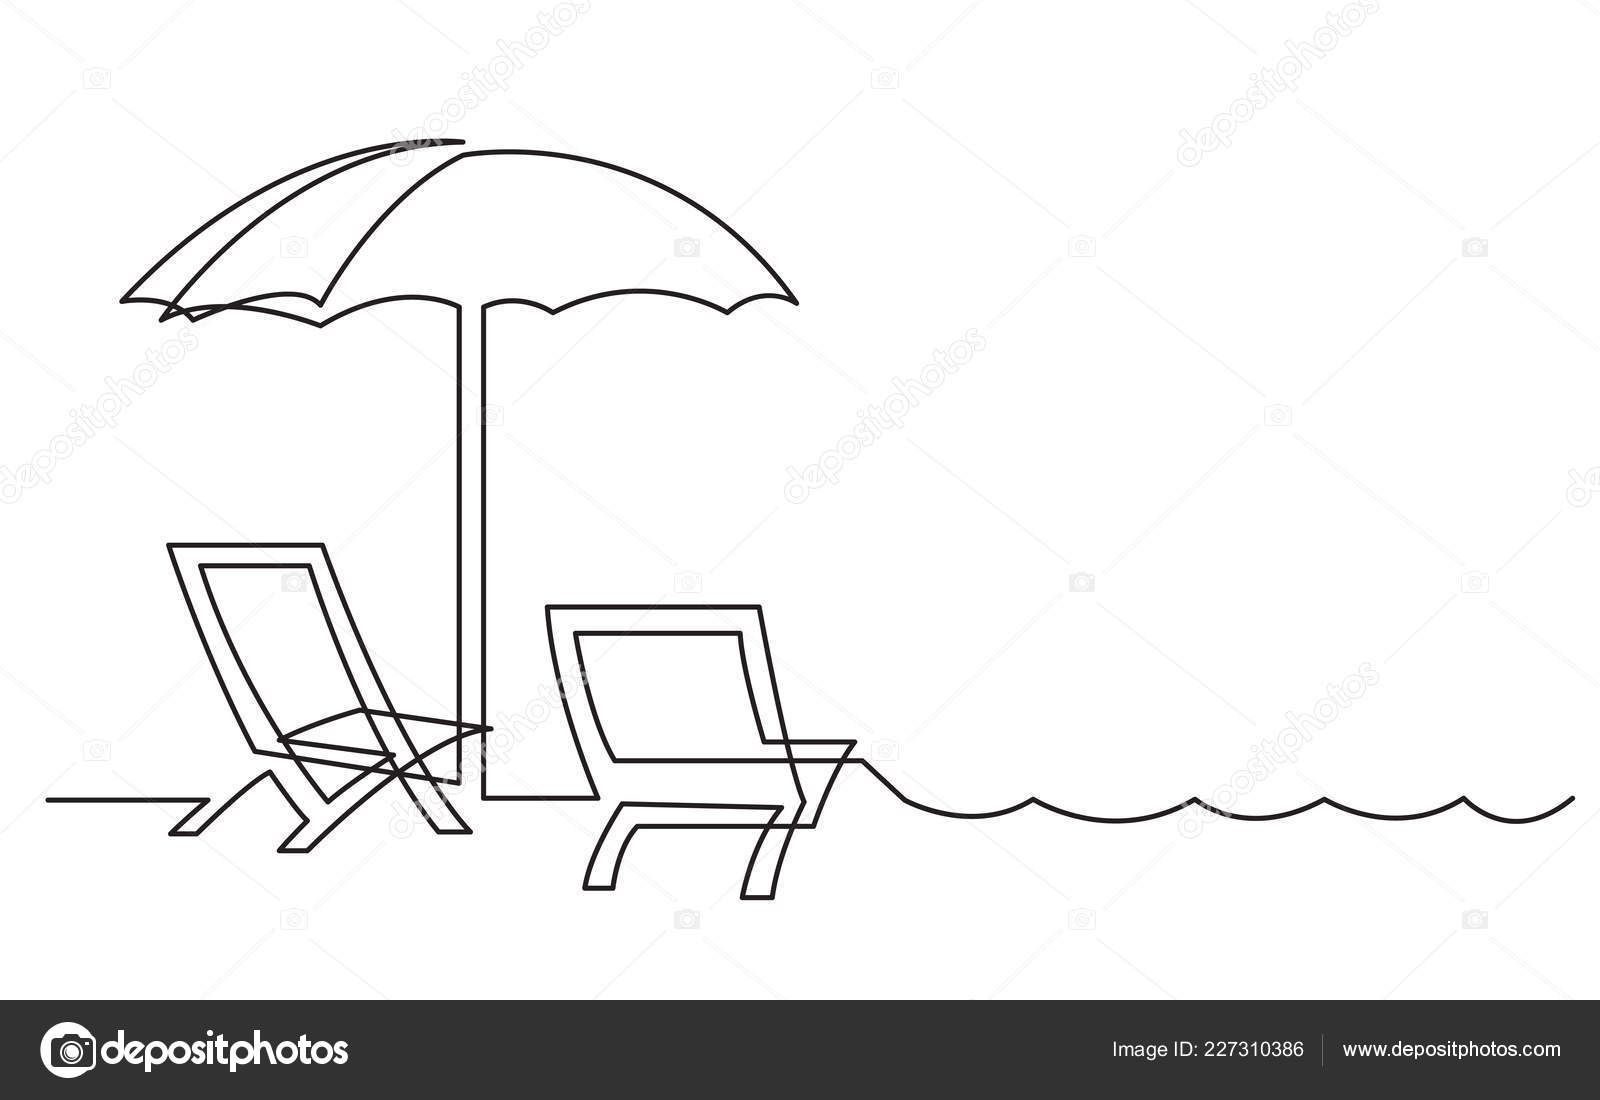 Continuous Line Drawing Beach Chairs Line Art Design Continuous Line Drawing Line Drawing